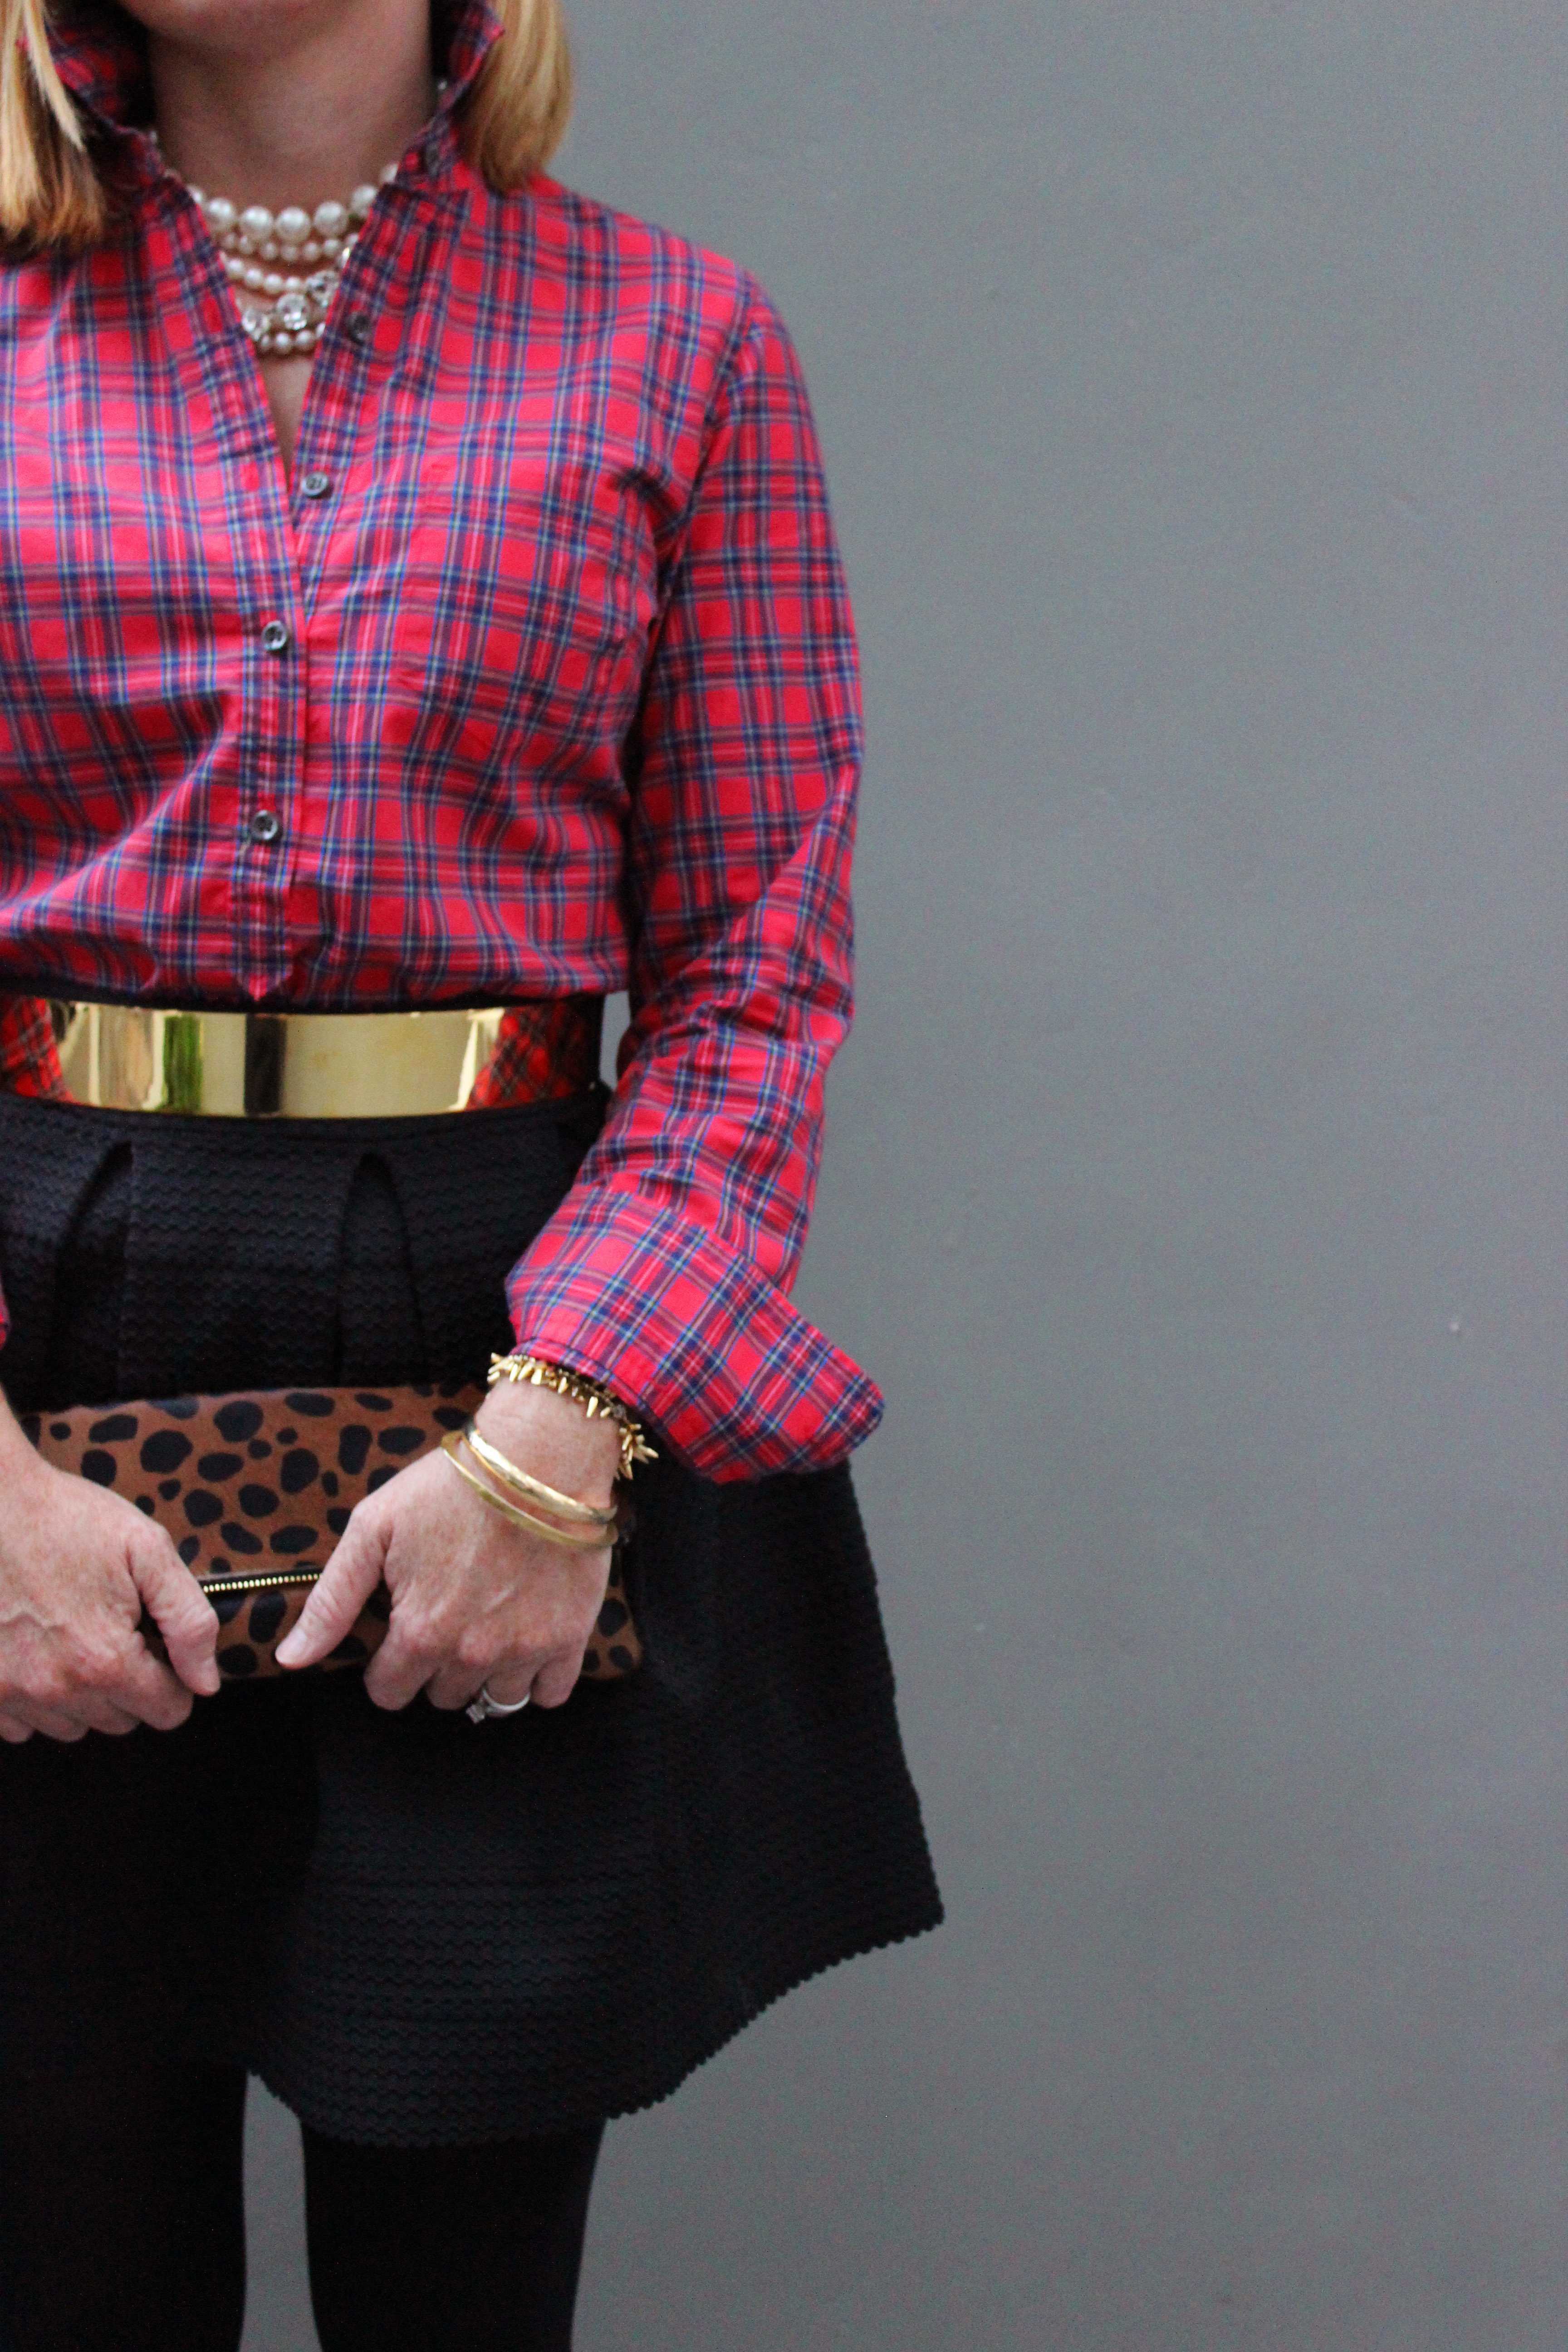 bcf004dff1a We paired it with a festive plaid button down and gave it an edge with the  gold metallic belt.